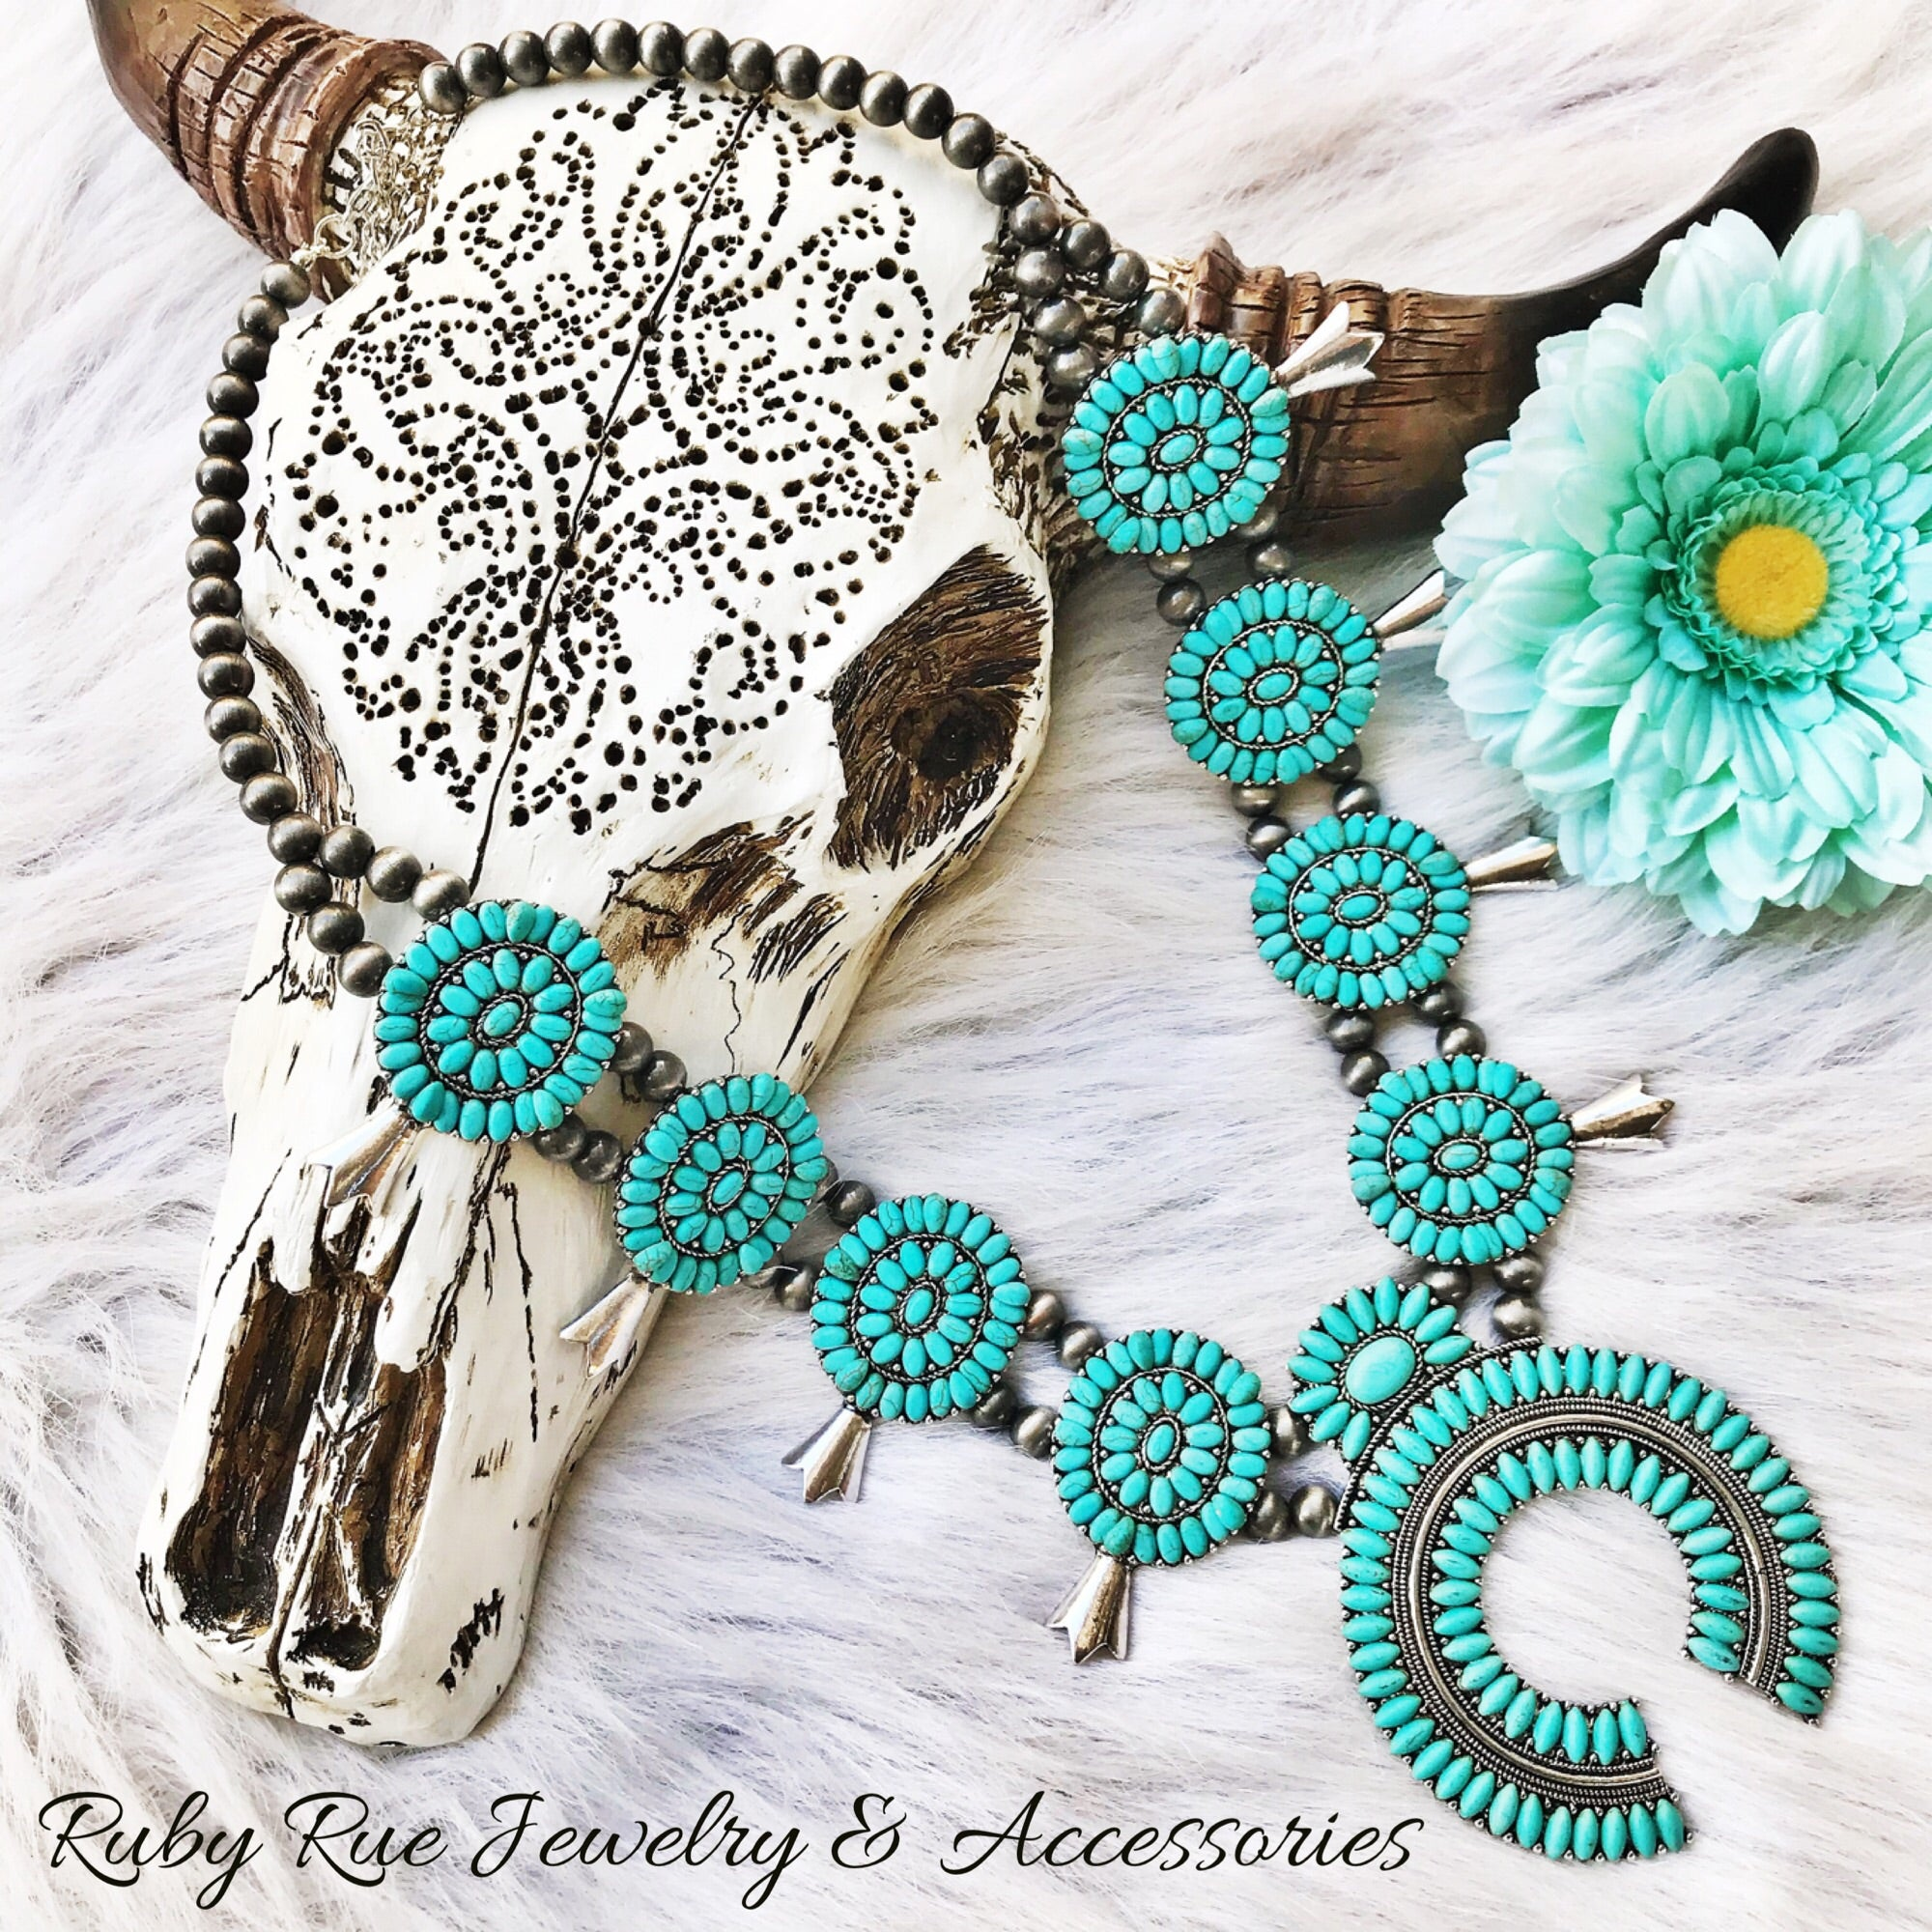 Vintage Inspired Turquoise Squash - Ruby Rue Jewelry & Accessories